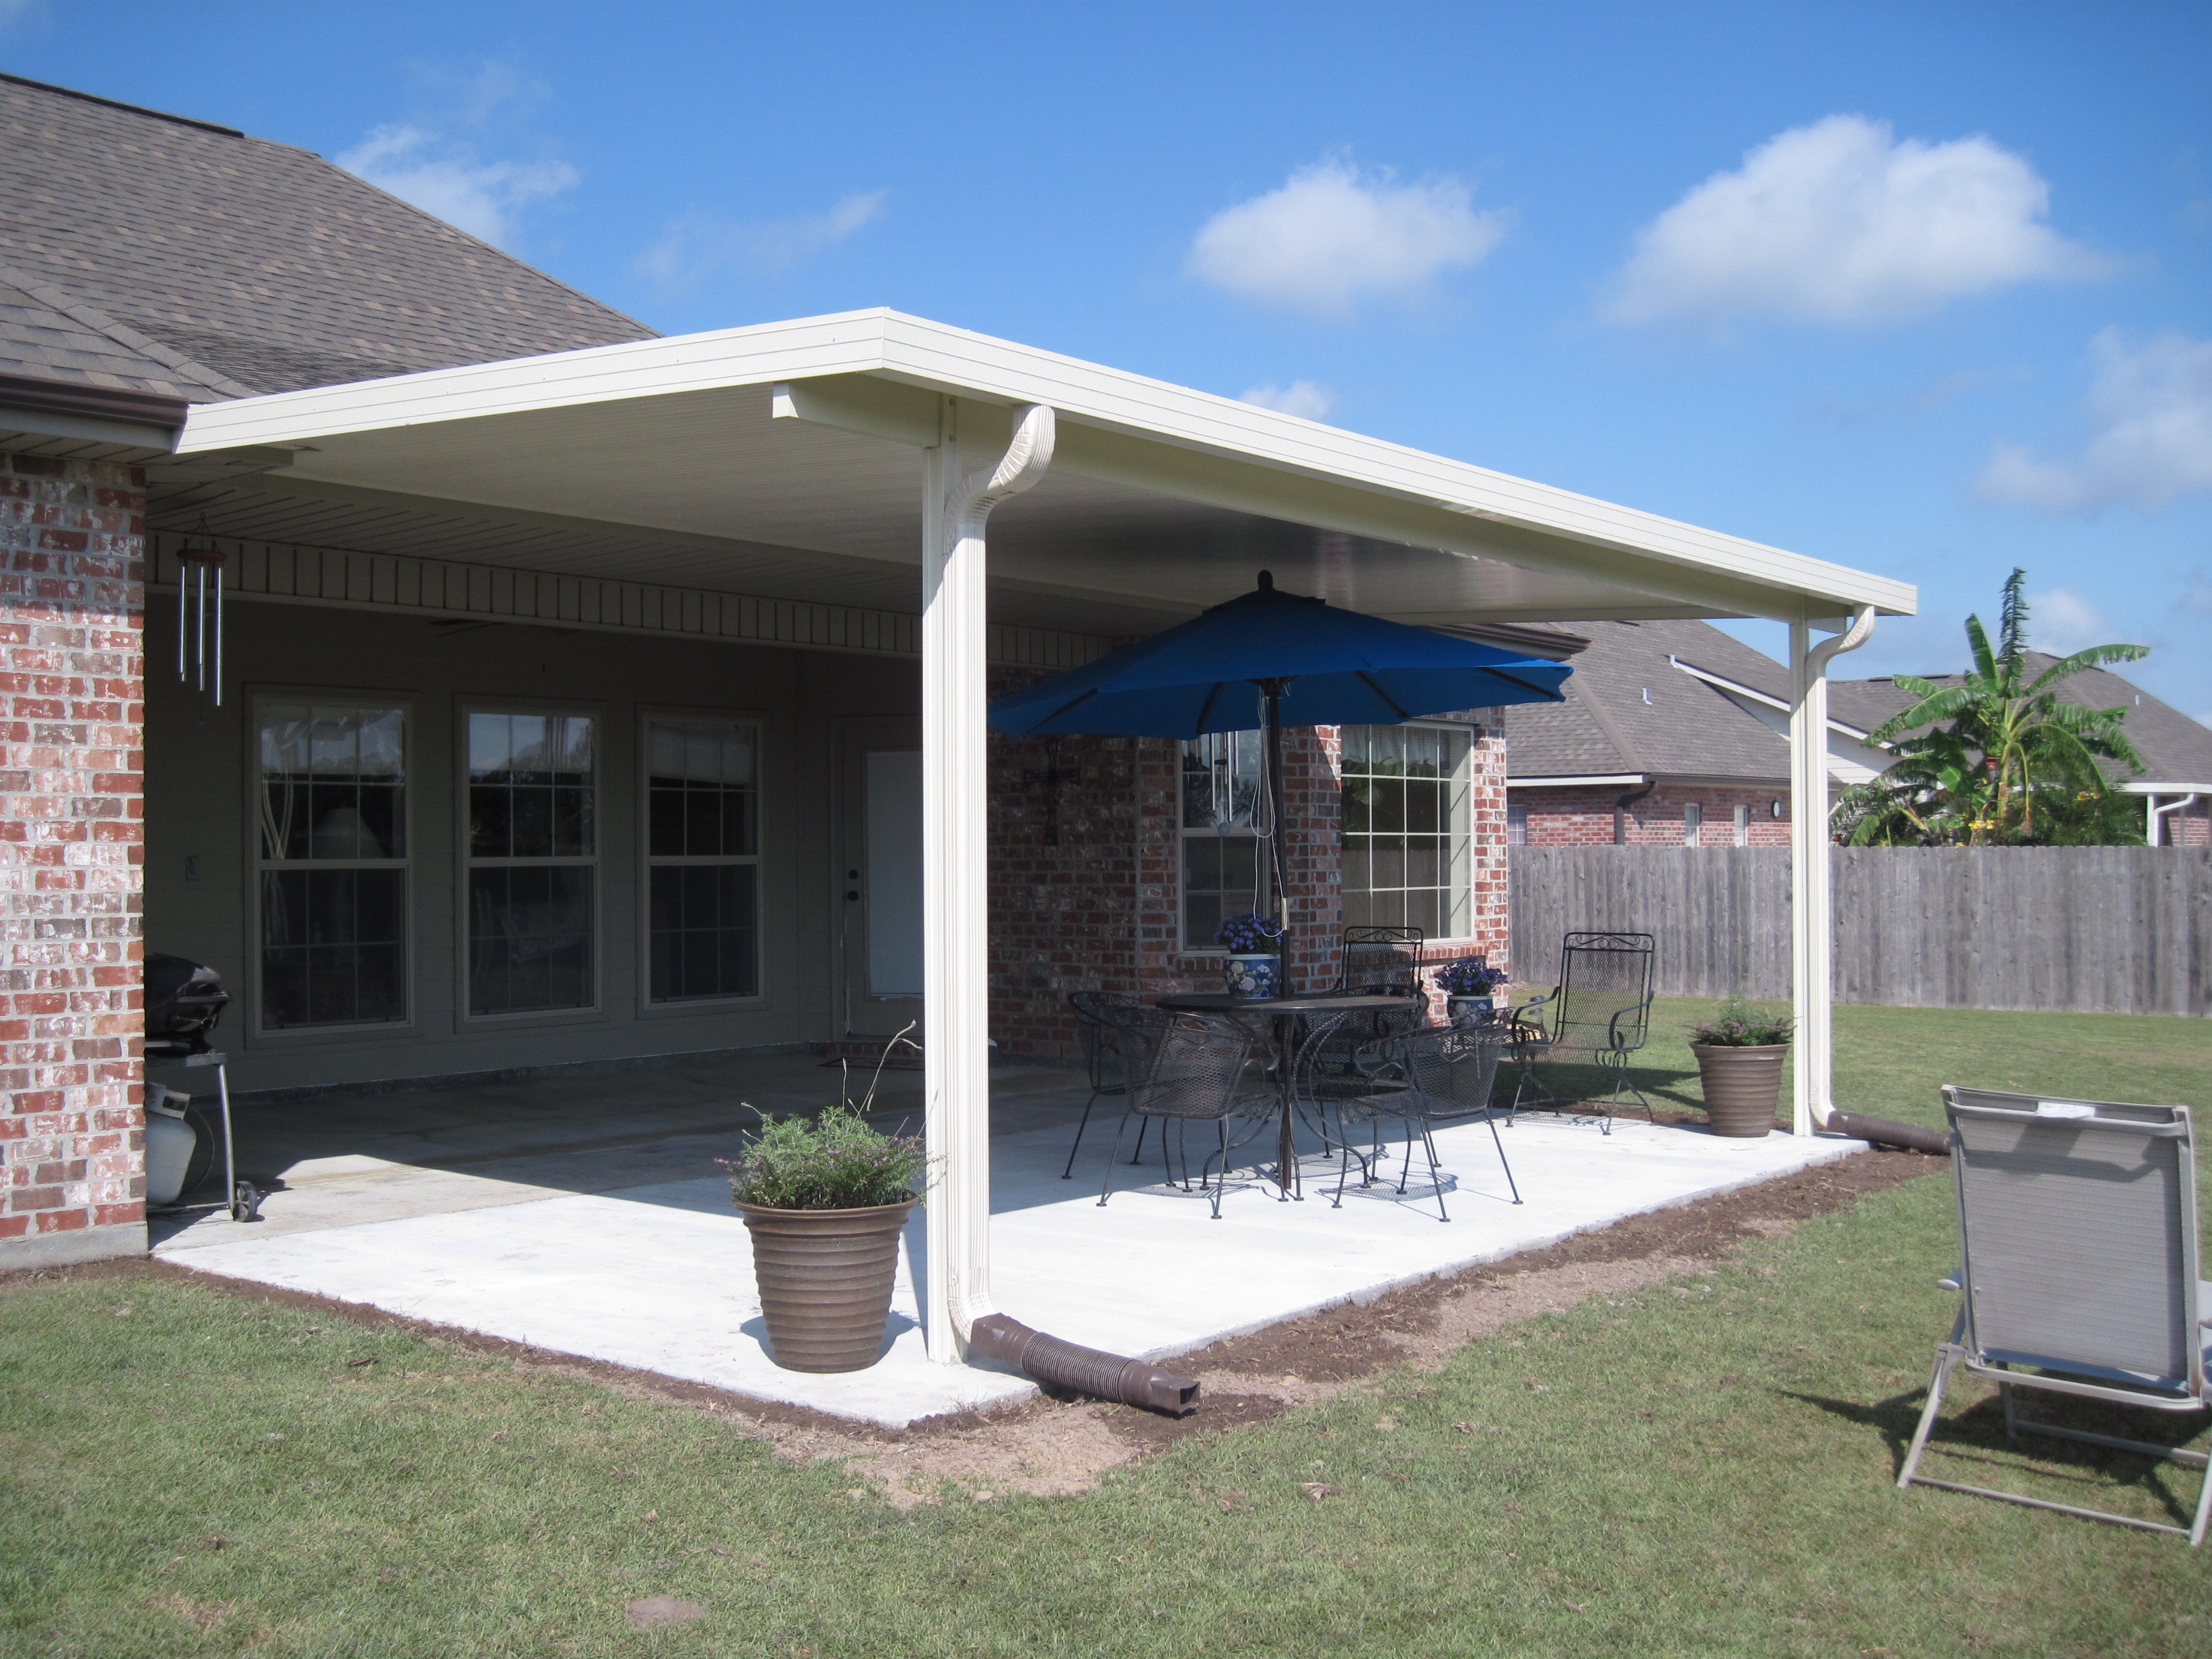 Patio Cover Contractor Lafayette, La  Liberty Home. Wood Patio Furniture Lowes. How To Make Patio Furniture Out Of Wood Pallets. Wooden Patio Table For Sale. Discount Outdoor Furniture Portland Oregon. Best Deal On Outdoor Chair Cushions. Wrought Iron Patio Furniture Pottery Barn. Patio Furniture And Fire Pit. Patio Sets On Sale Kmart